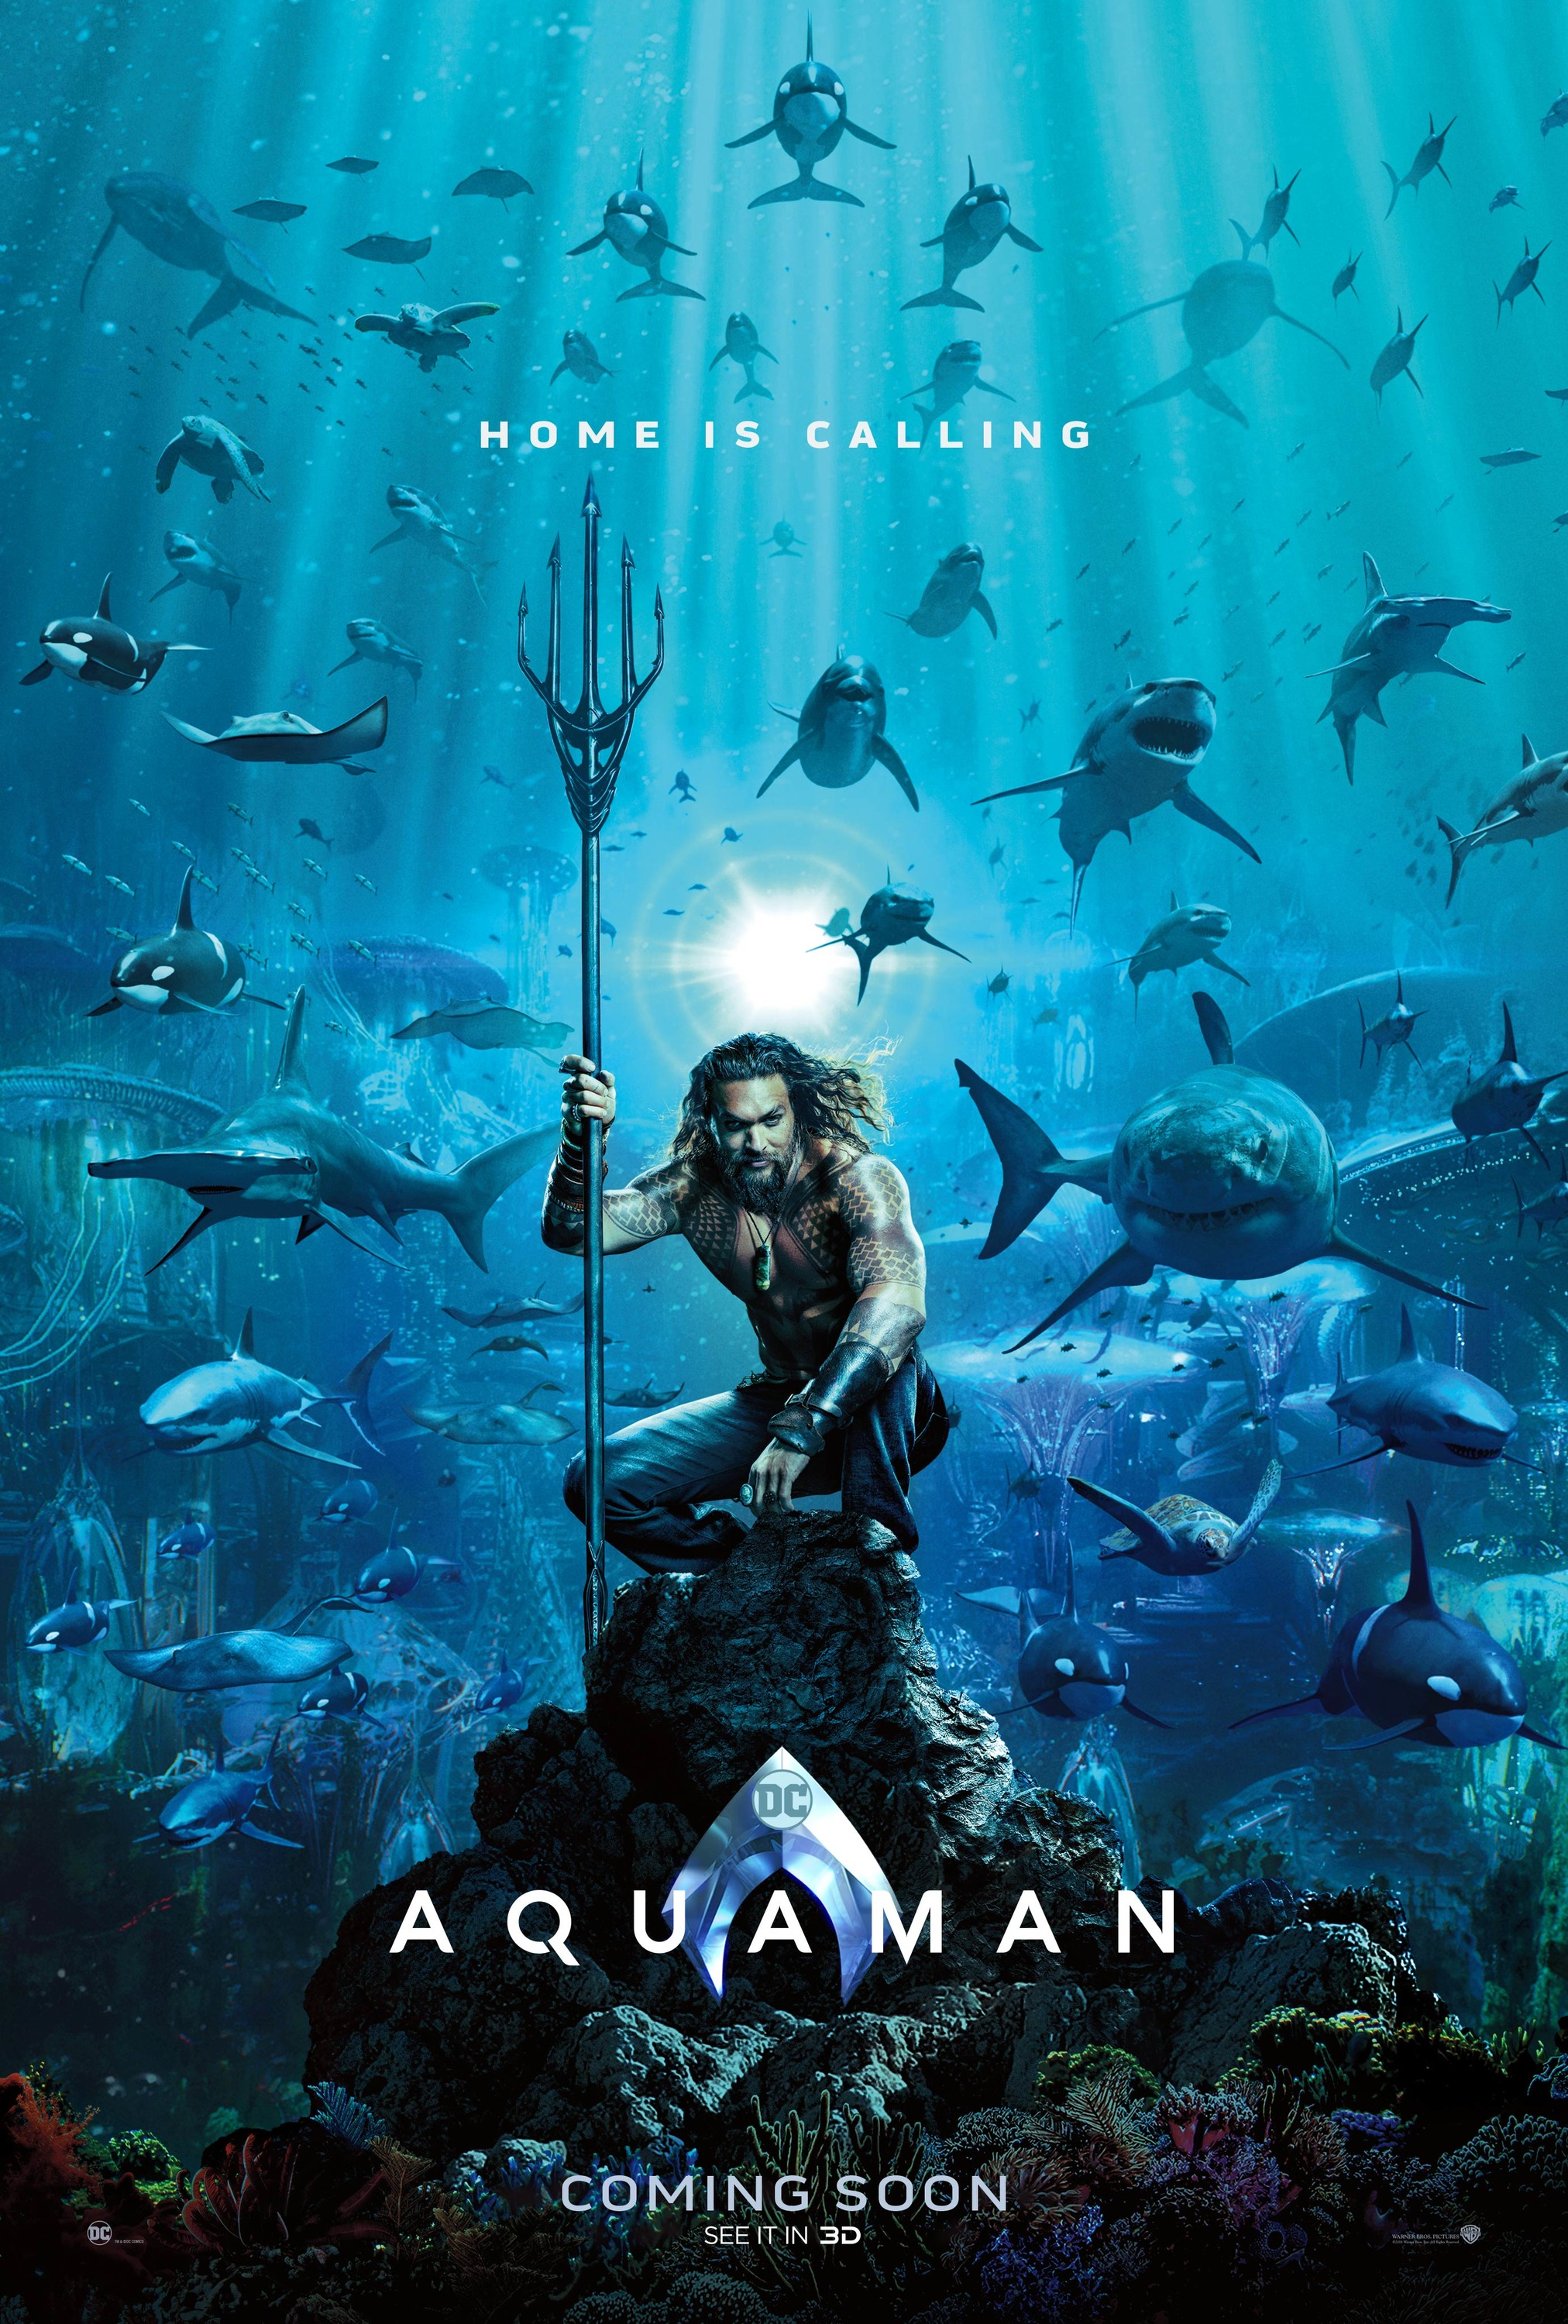 Aquaman film review: the DC hall of fame or shame?